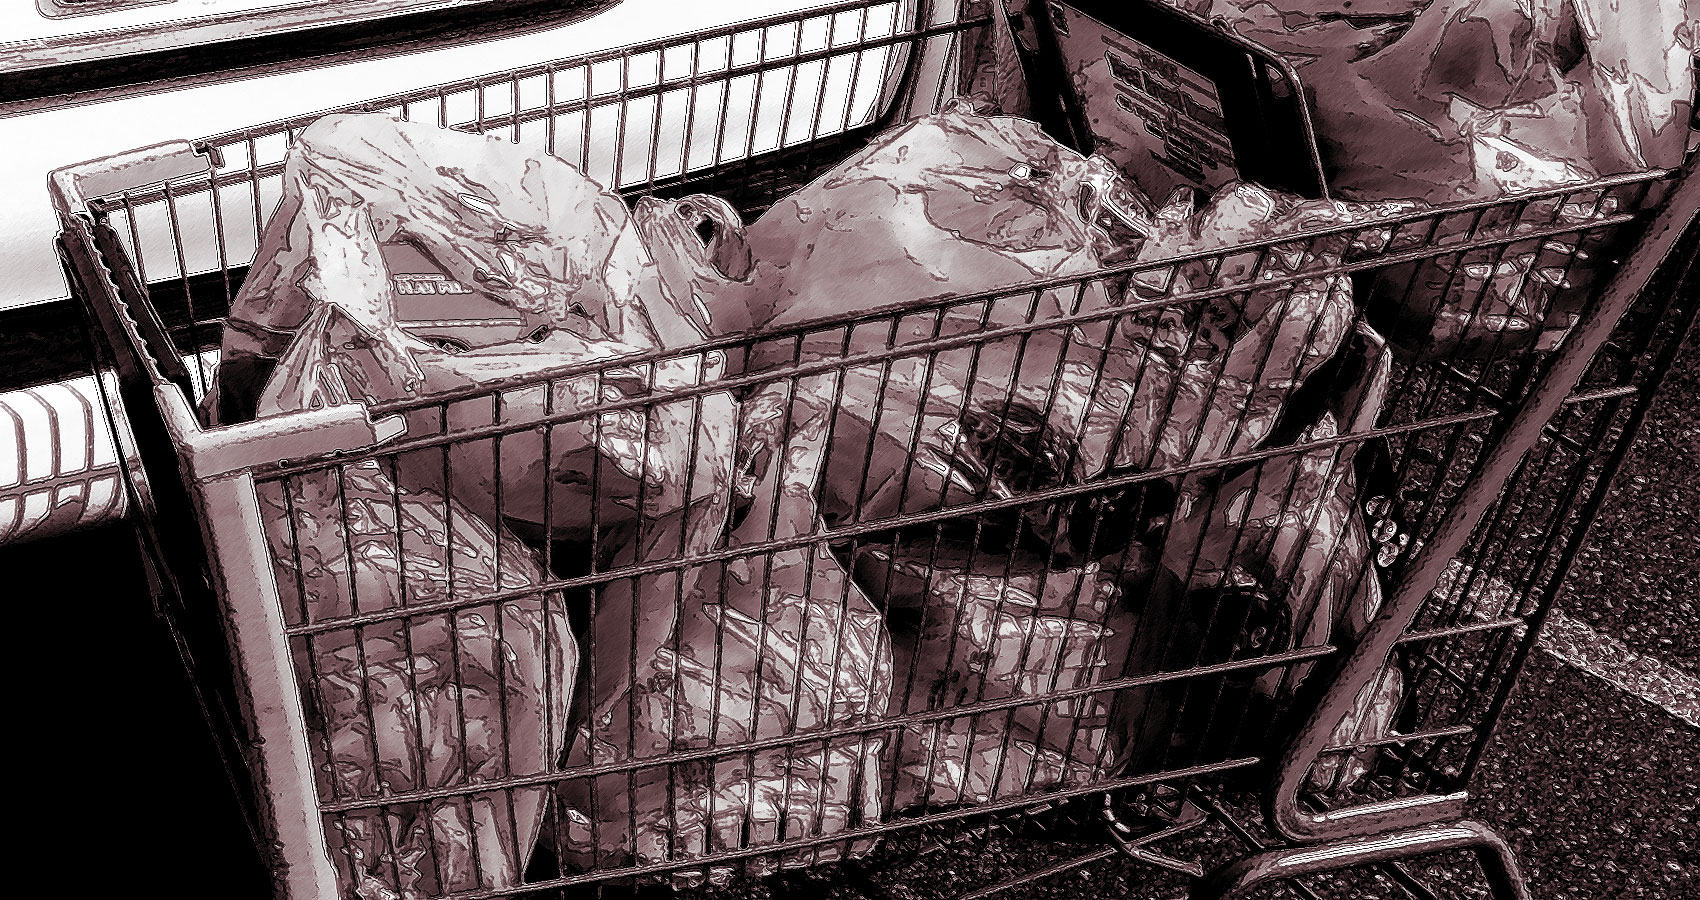 Groceries, poetry written by James Gabriel at Spillwords.com